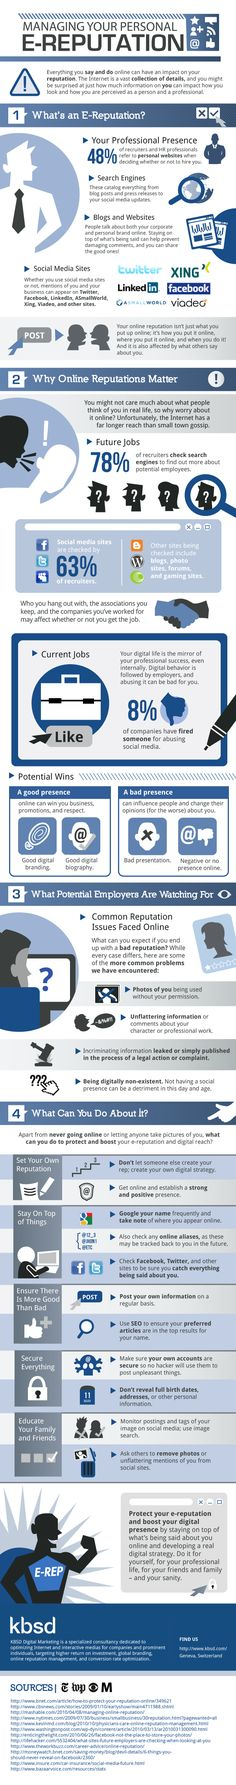 How to manage your online reputation #infographic